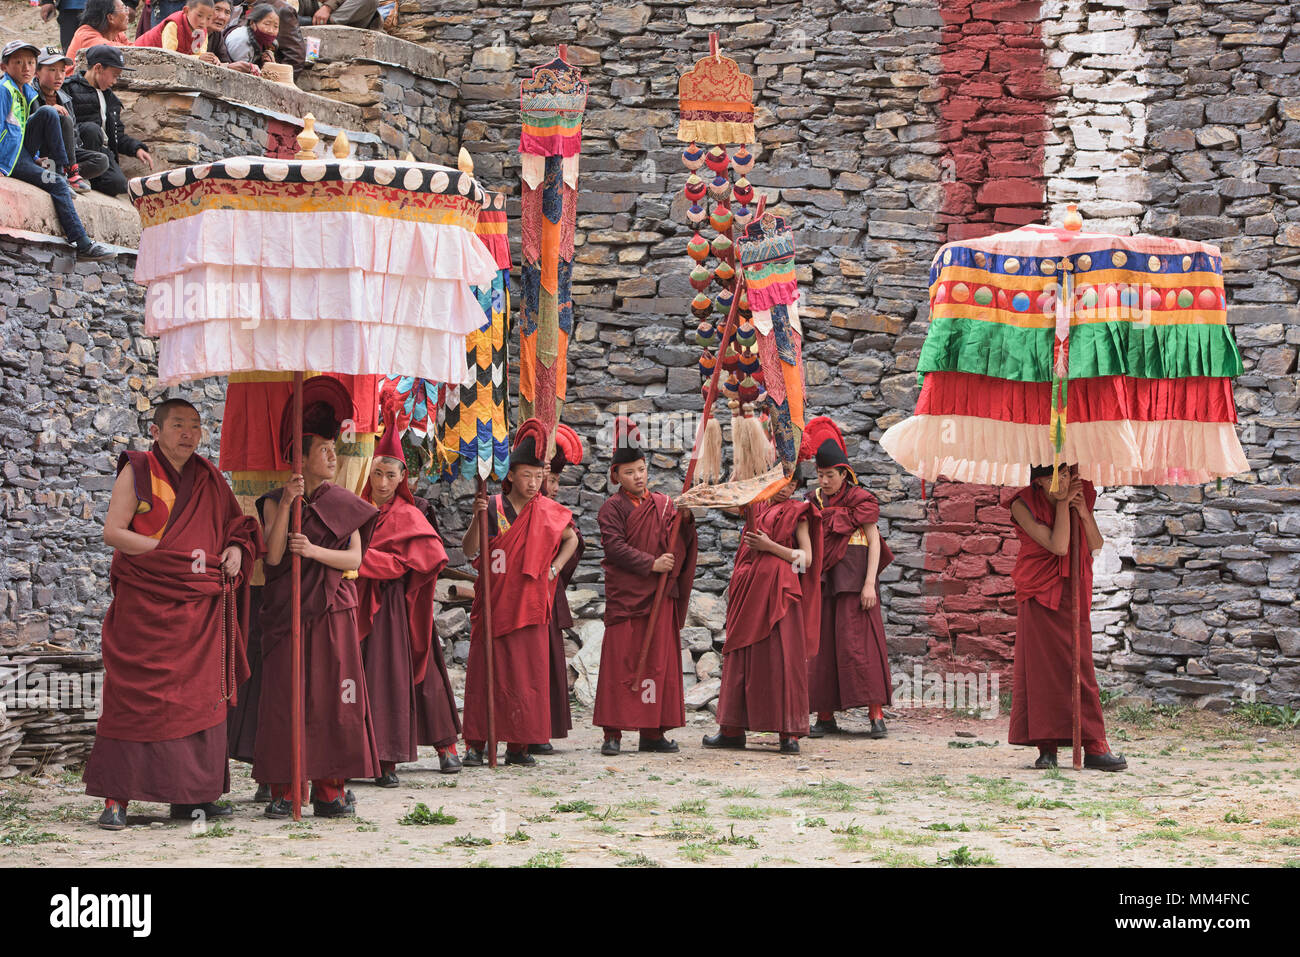 Sakya red hat monks at the Jinganqumo purification festival in Dege, Sichuan, China - Stock Image